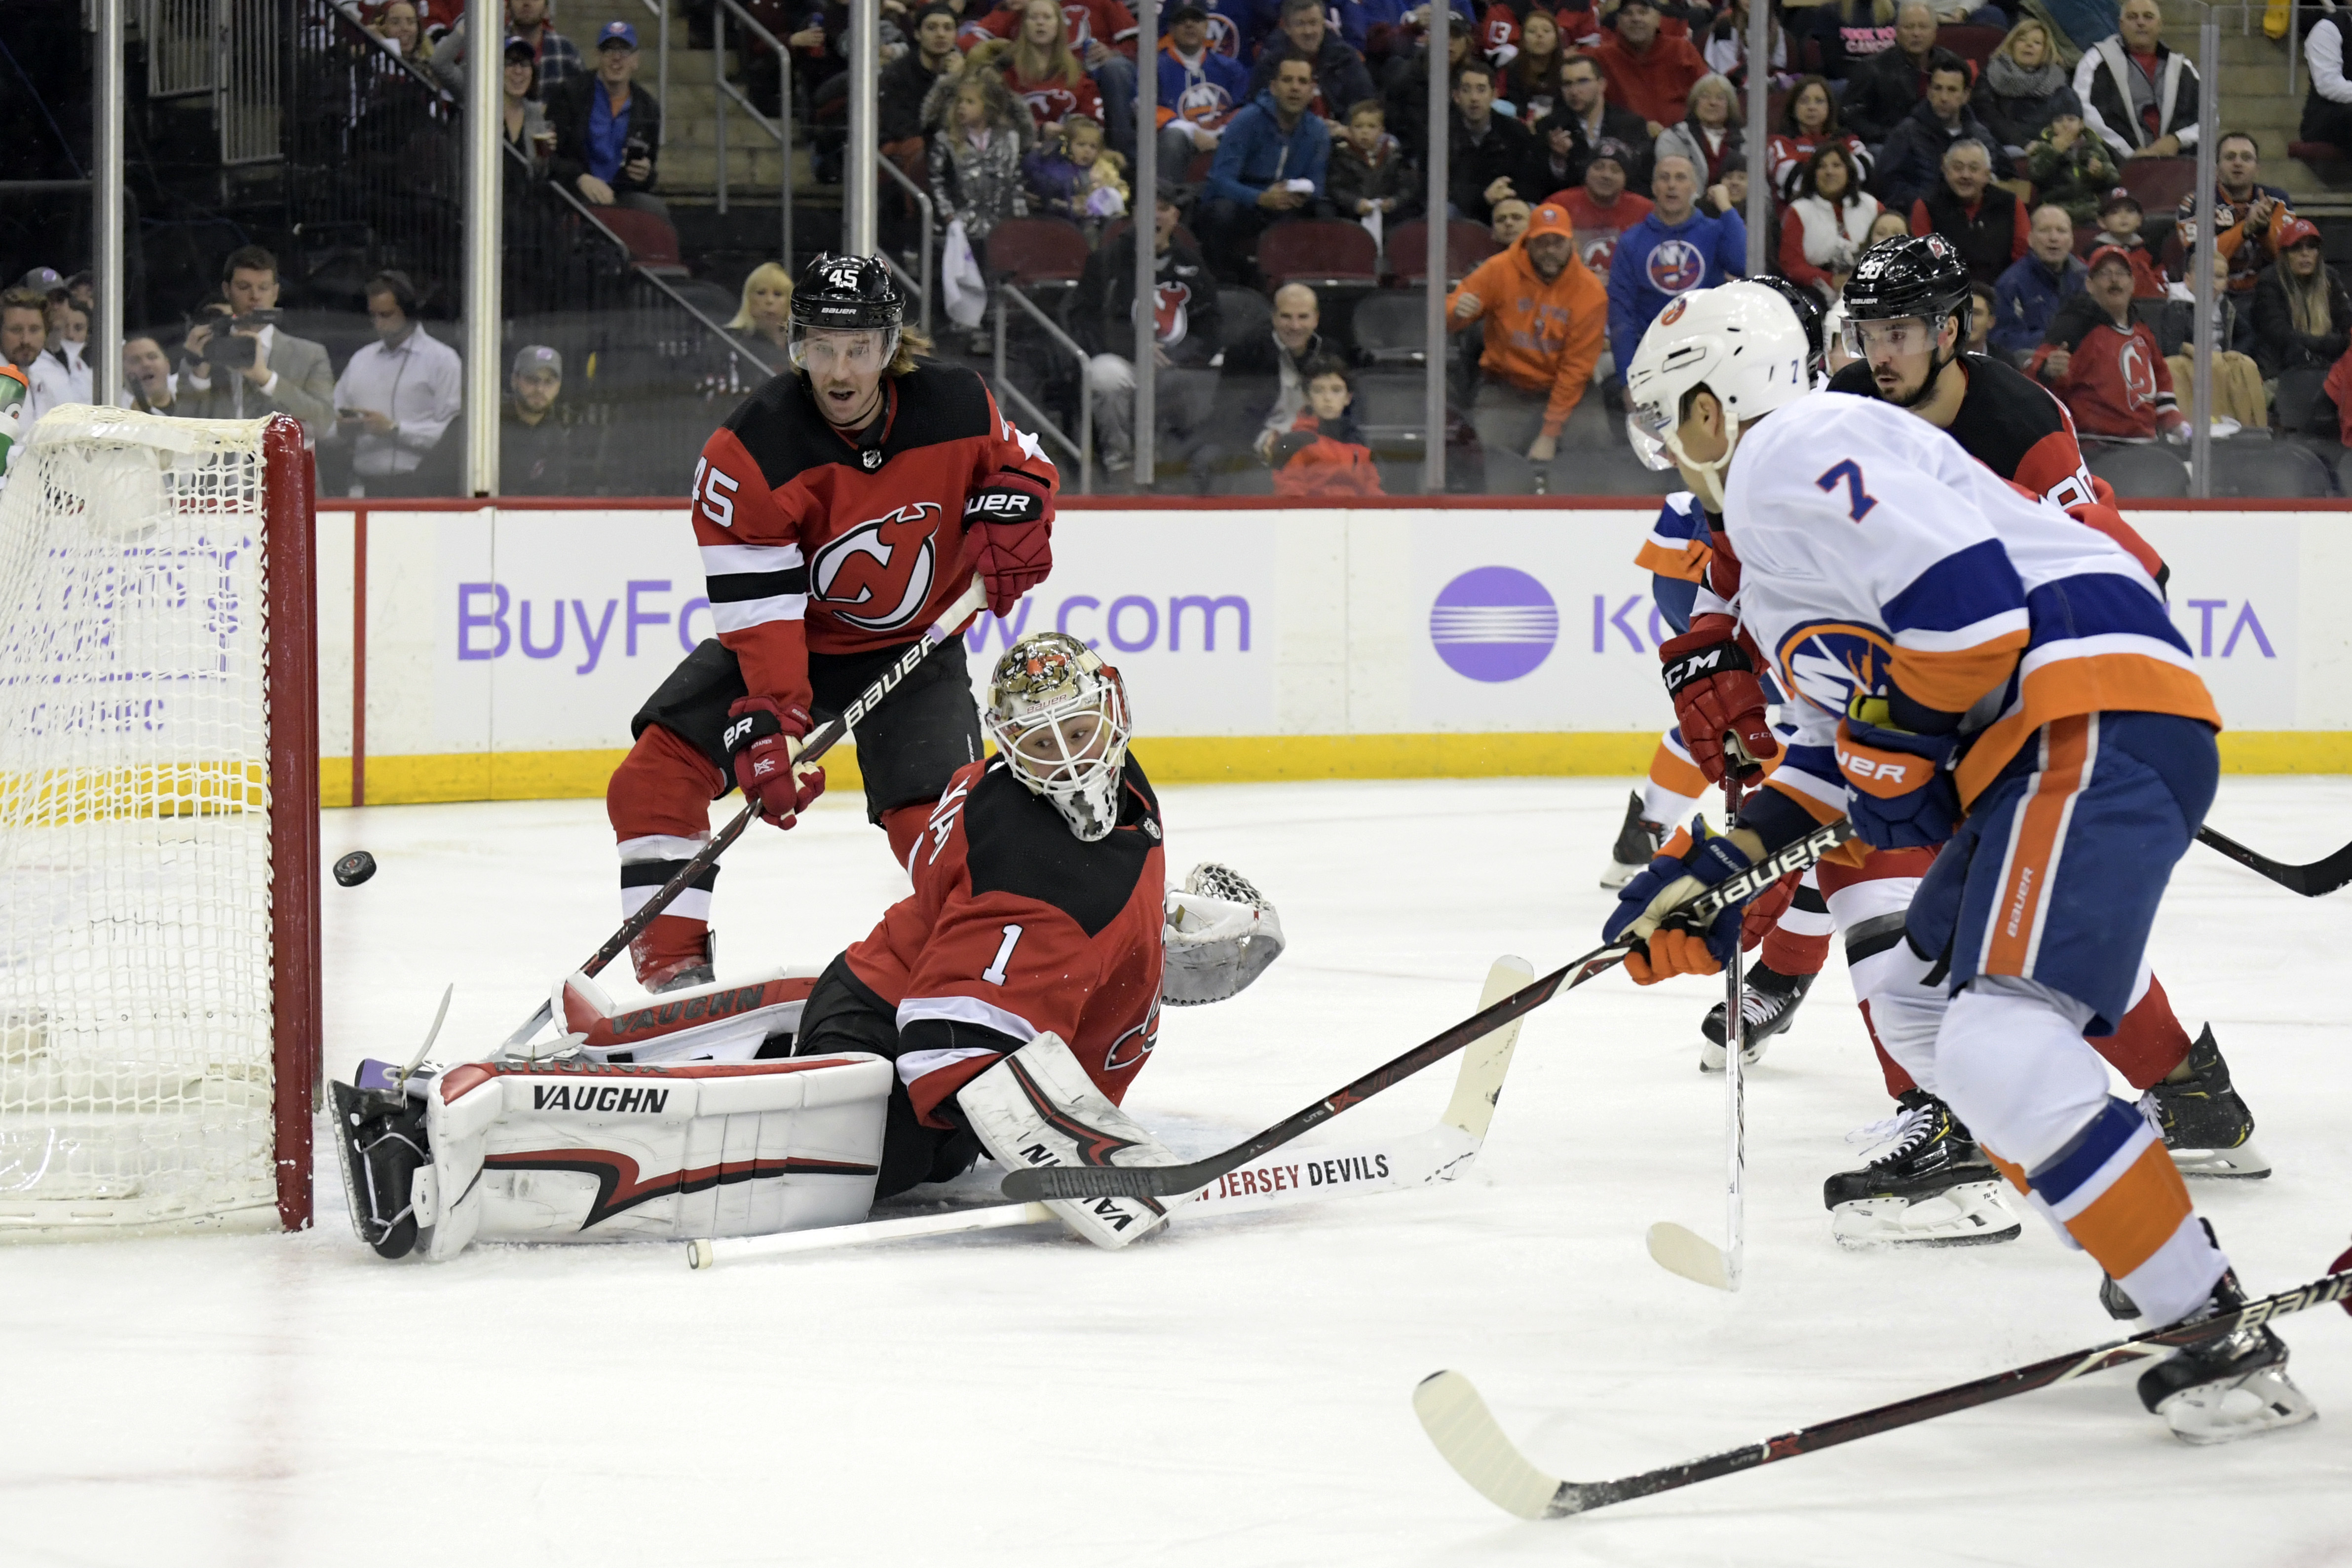 Highlight reel goal by Leddy leads Islanders over Devils